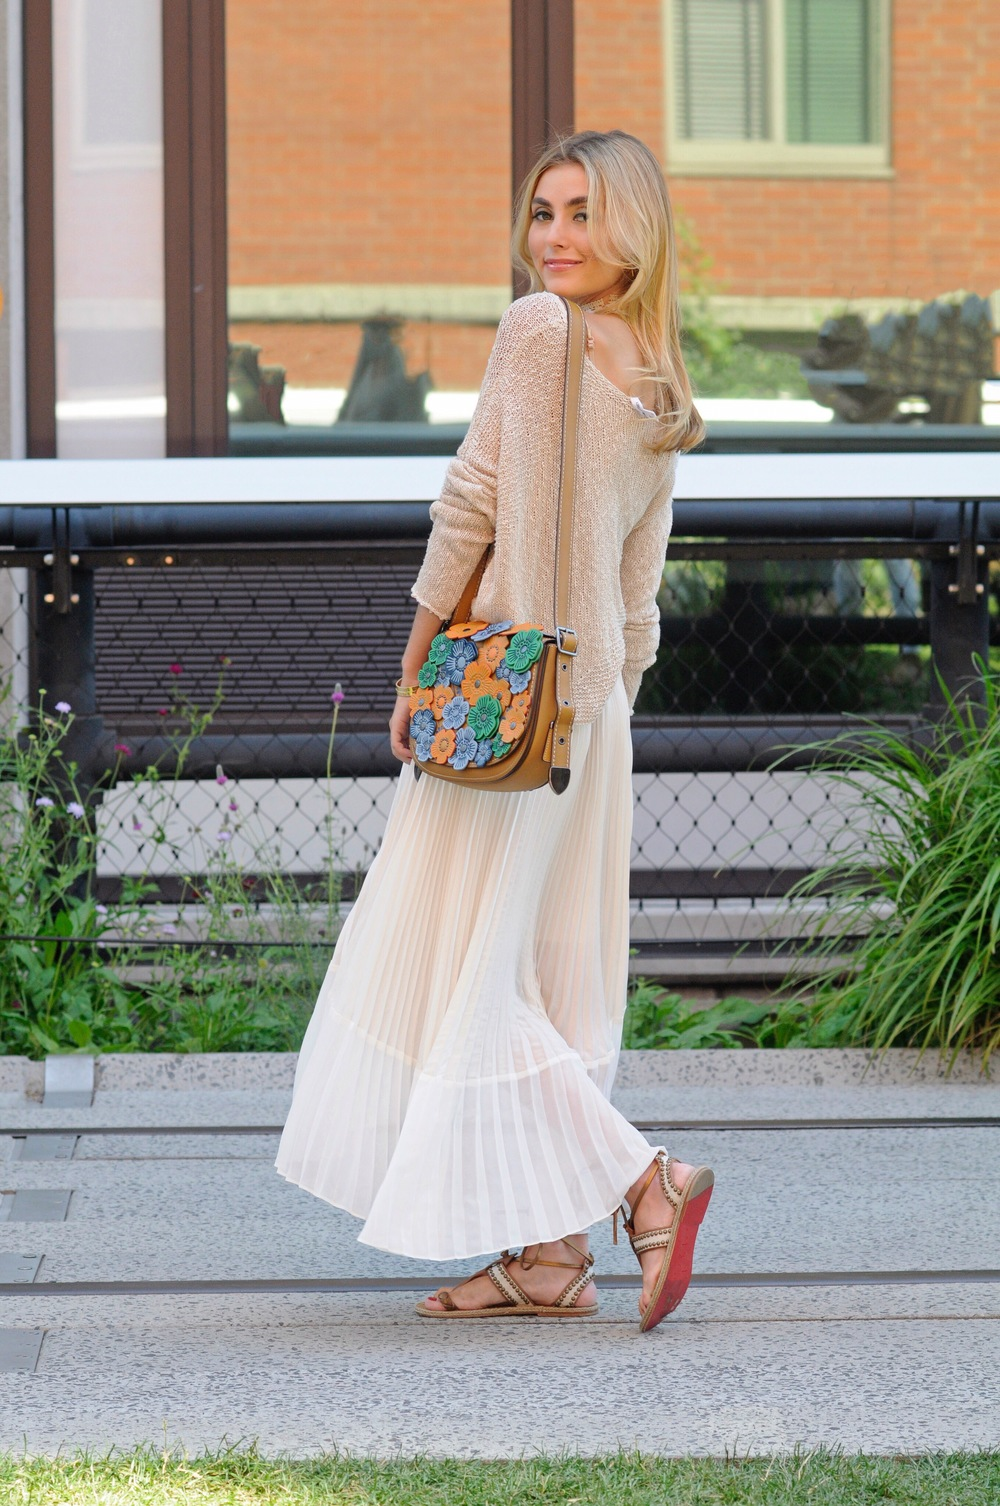 NYC FASHION BLOGGER CHARLOTTE BICKLEY